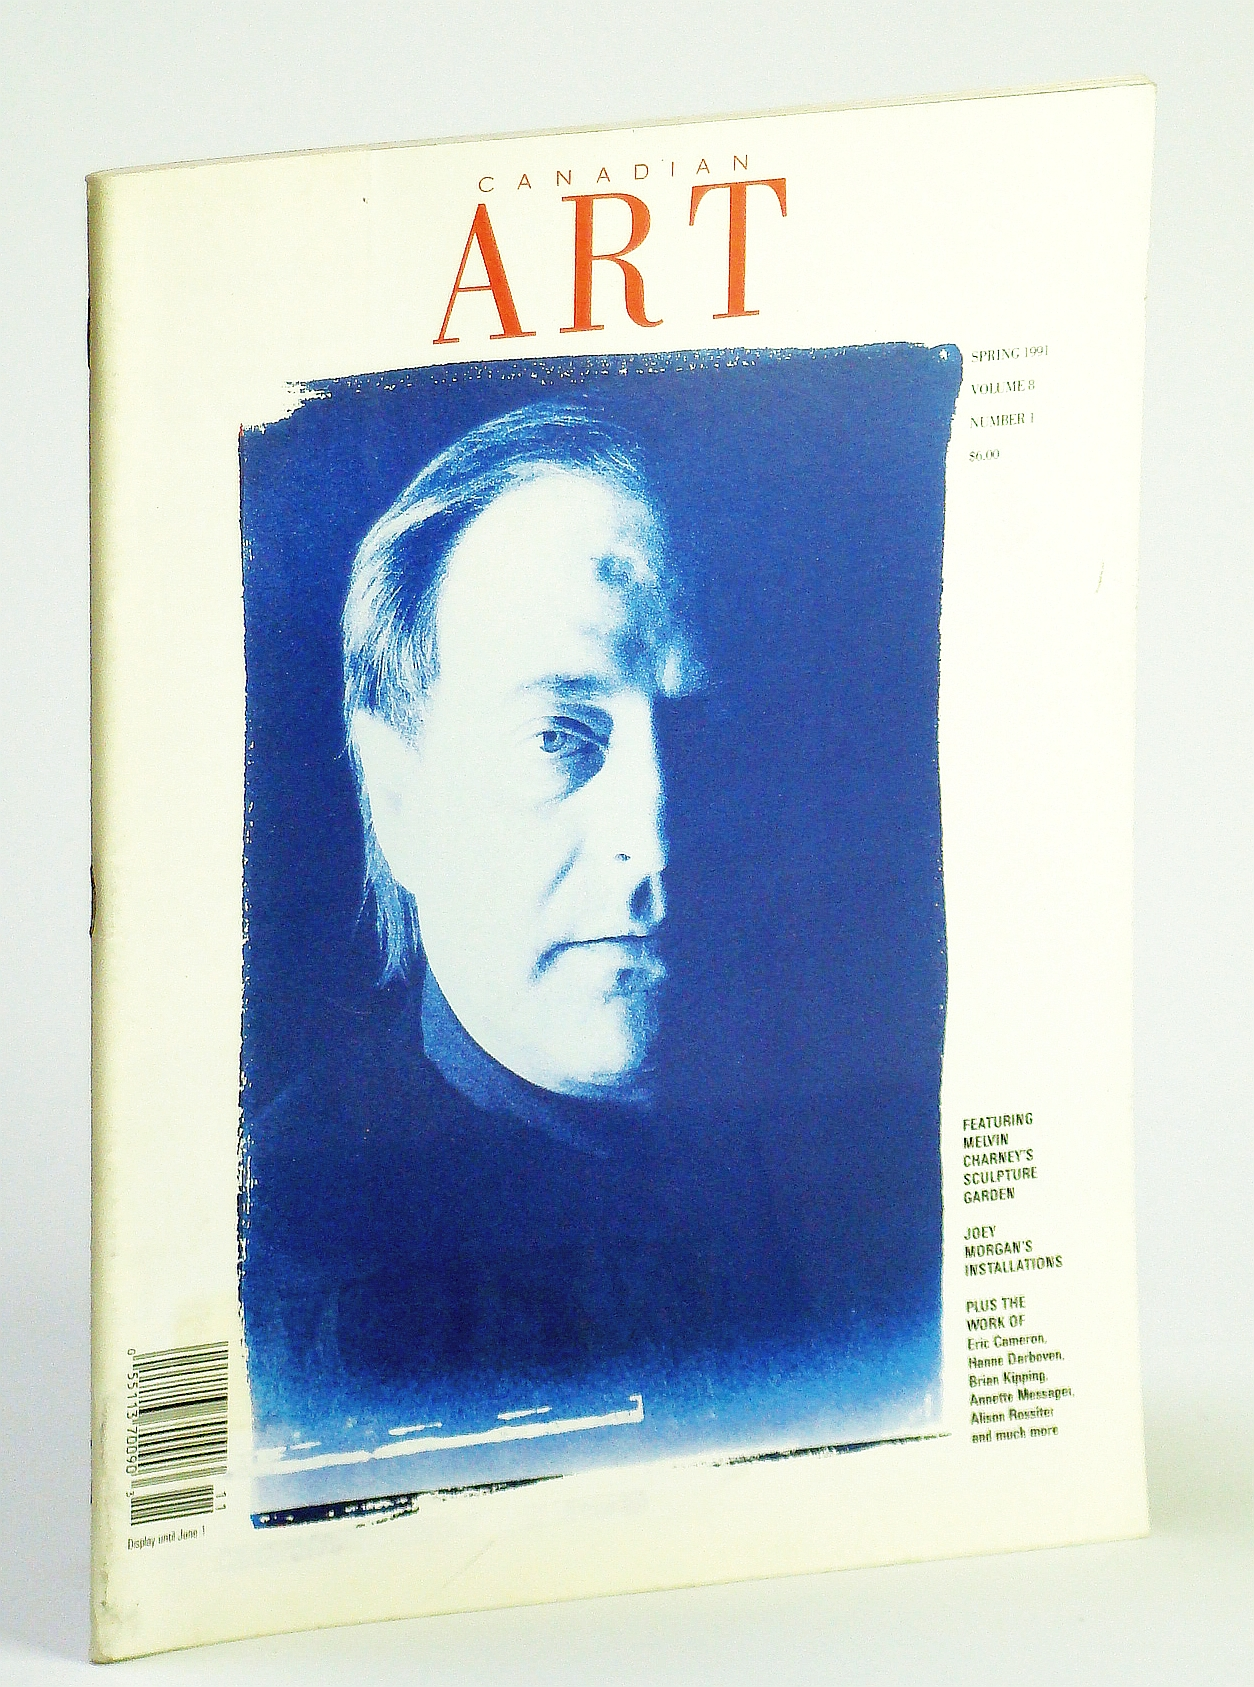 Image for Canadian Art (Magazine), Spring 1991, Volume 8, Number 1 - Joey Morgan / Brian Kipping